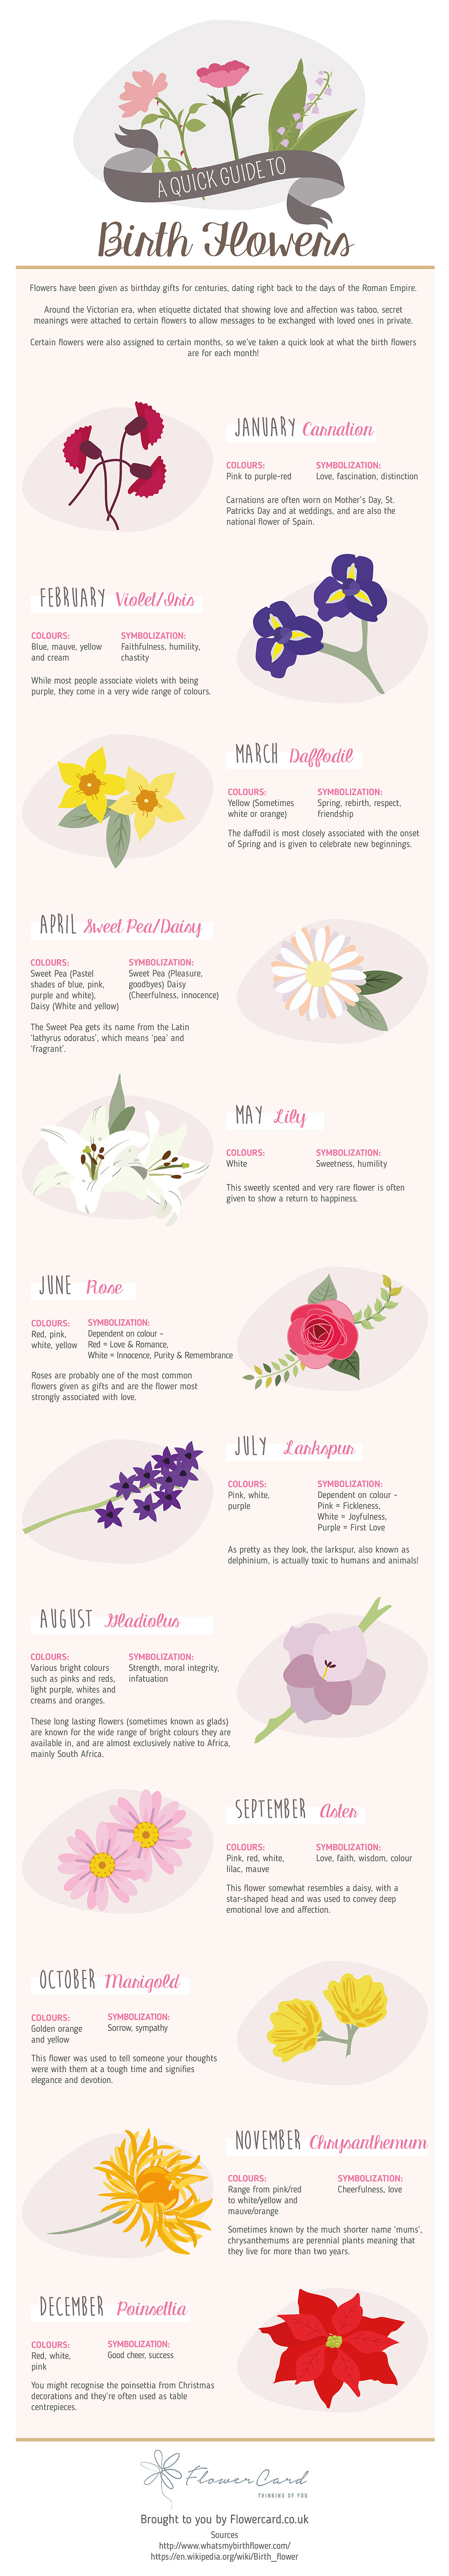 A Quick Guide To Birth Flowers Infographic Flowercard Thinking